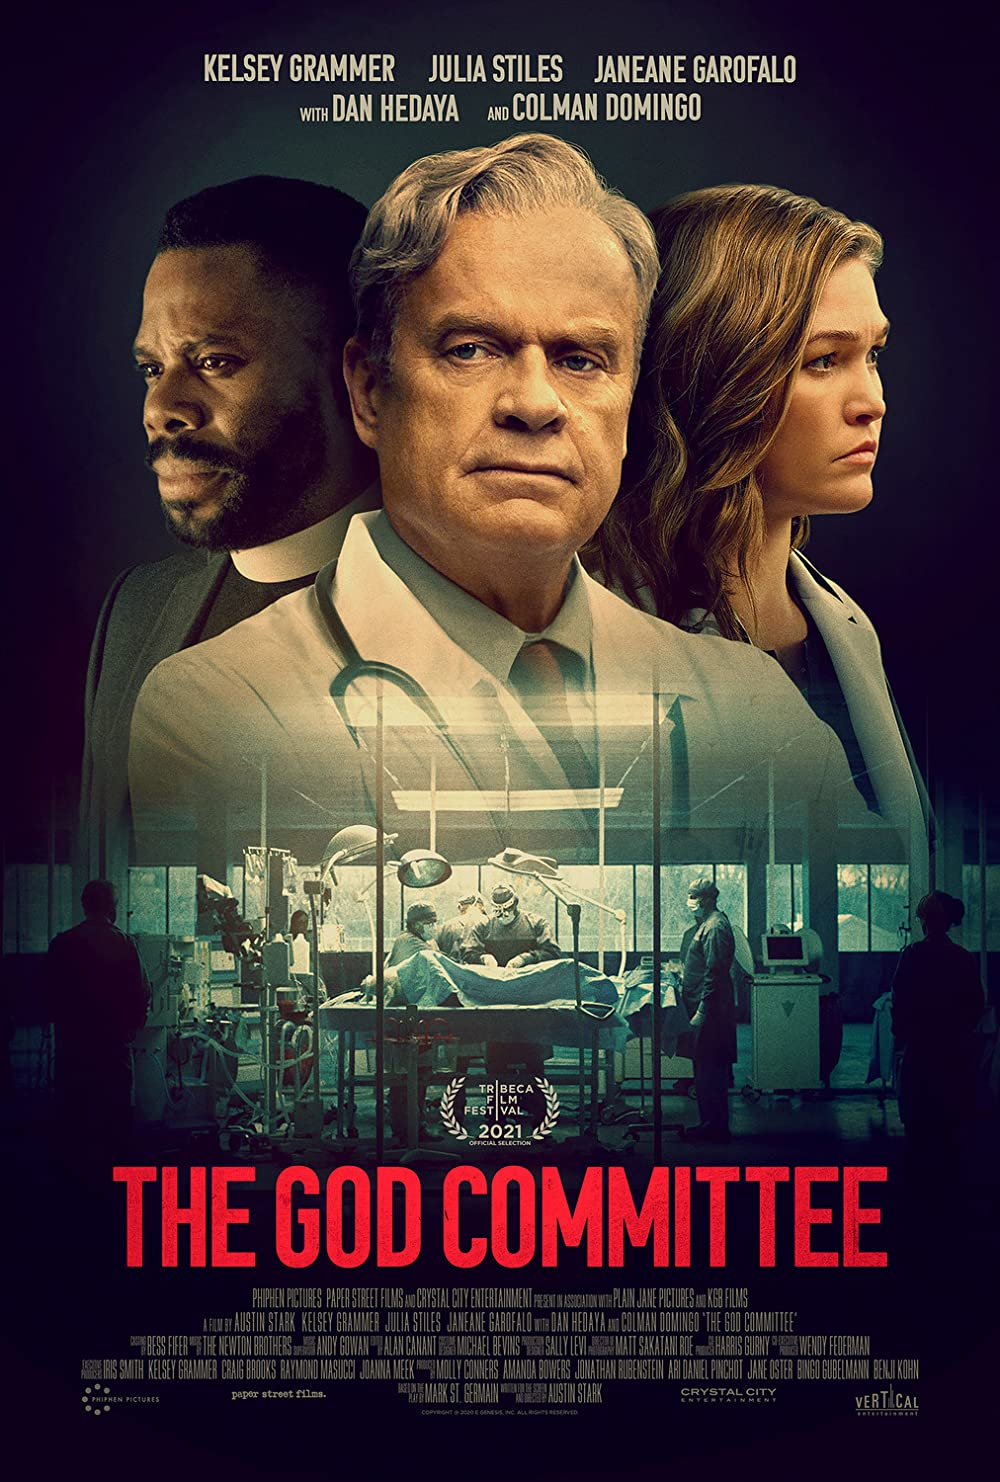 The God Committee (2021) Bengali Dubbed (Voice Over) WEBRip 720p [Full Movie] 1XBET